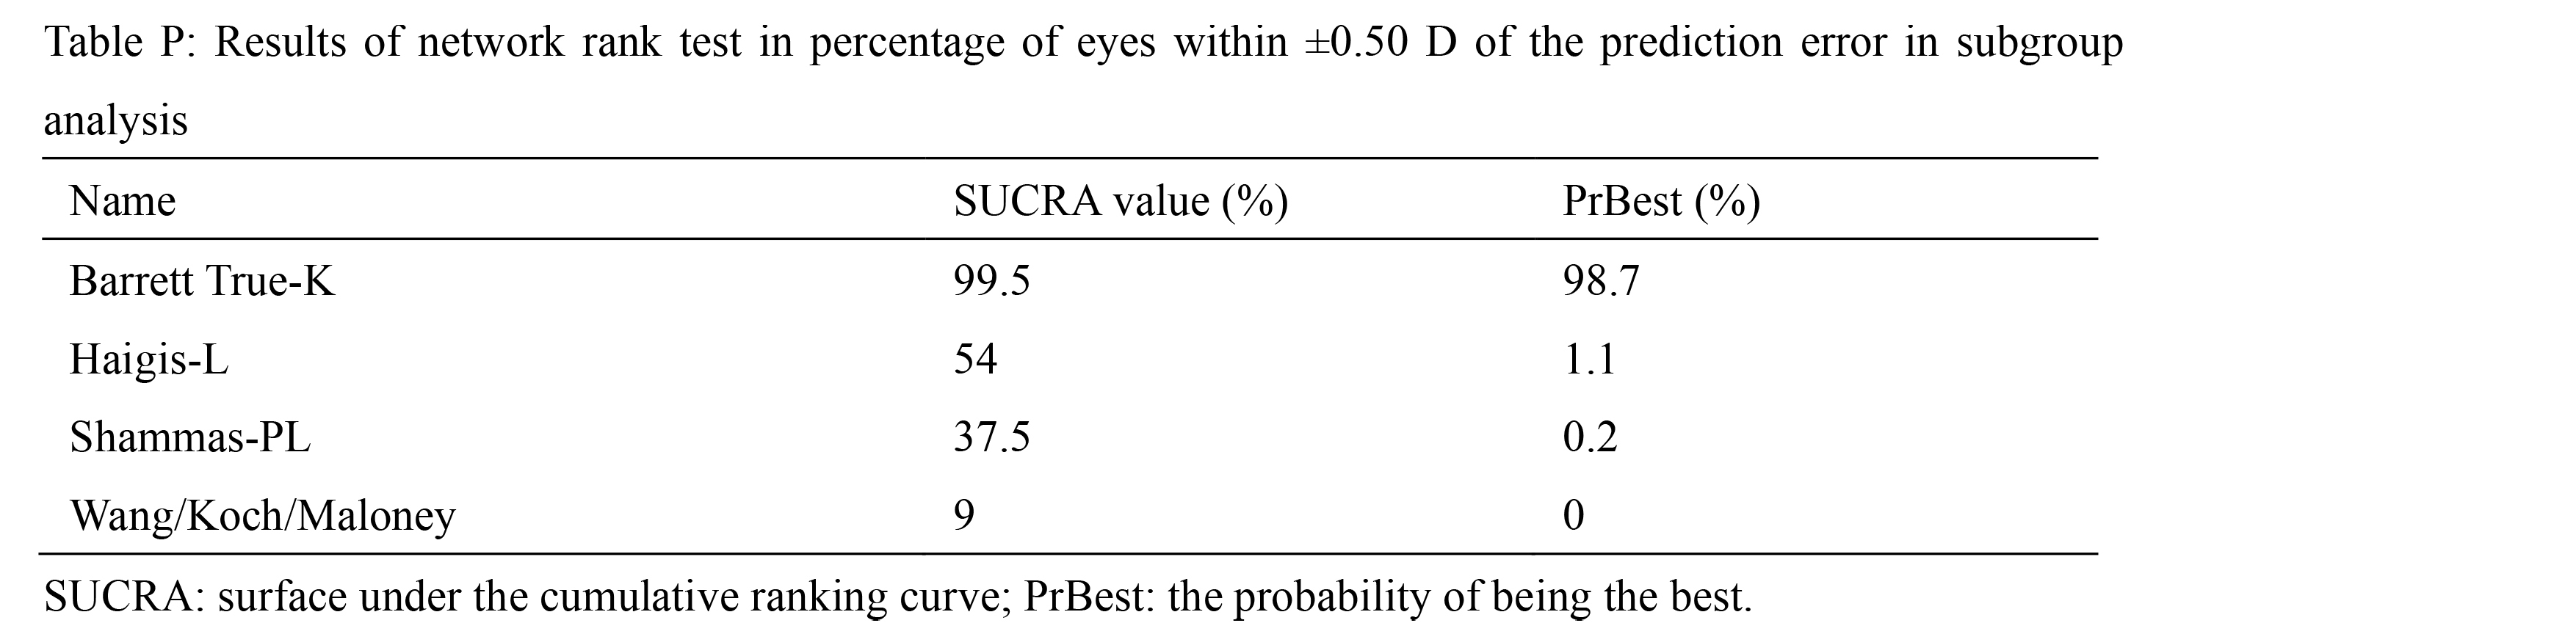 Results of network rank test in percentage of eyes within ±0.50 D of the prediction error in subgroup analysis